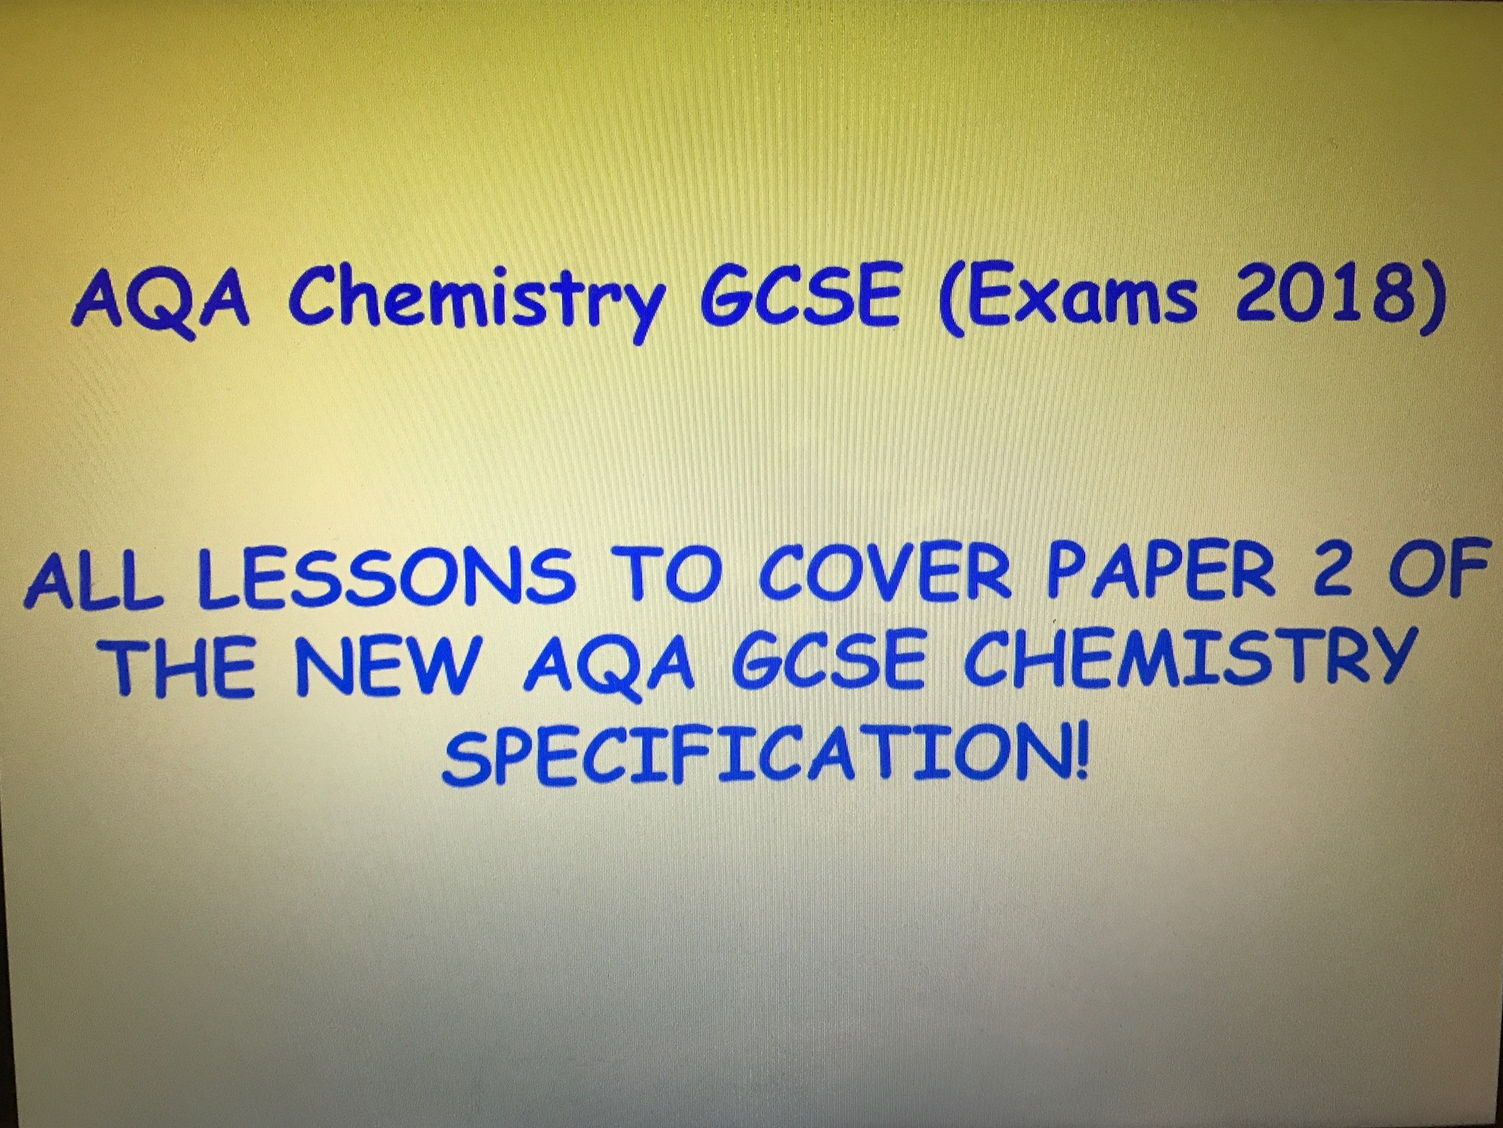 AQA New GCSE Chemistry (Exams 2018) - Entire Paper 2 resource pack